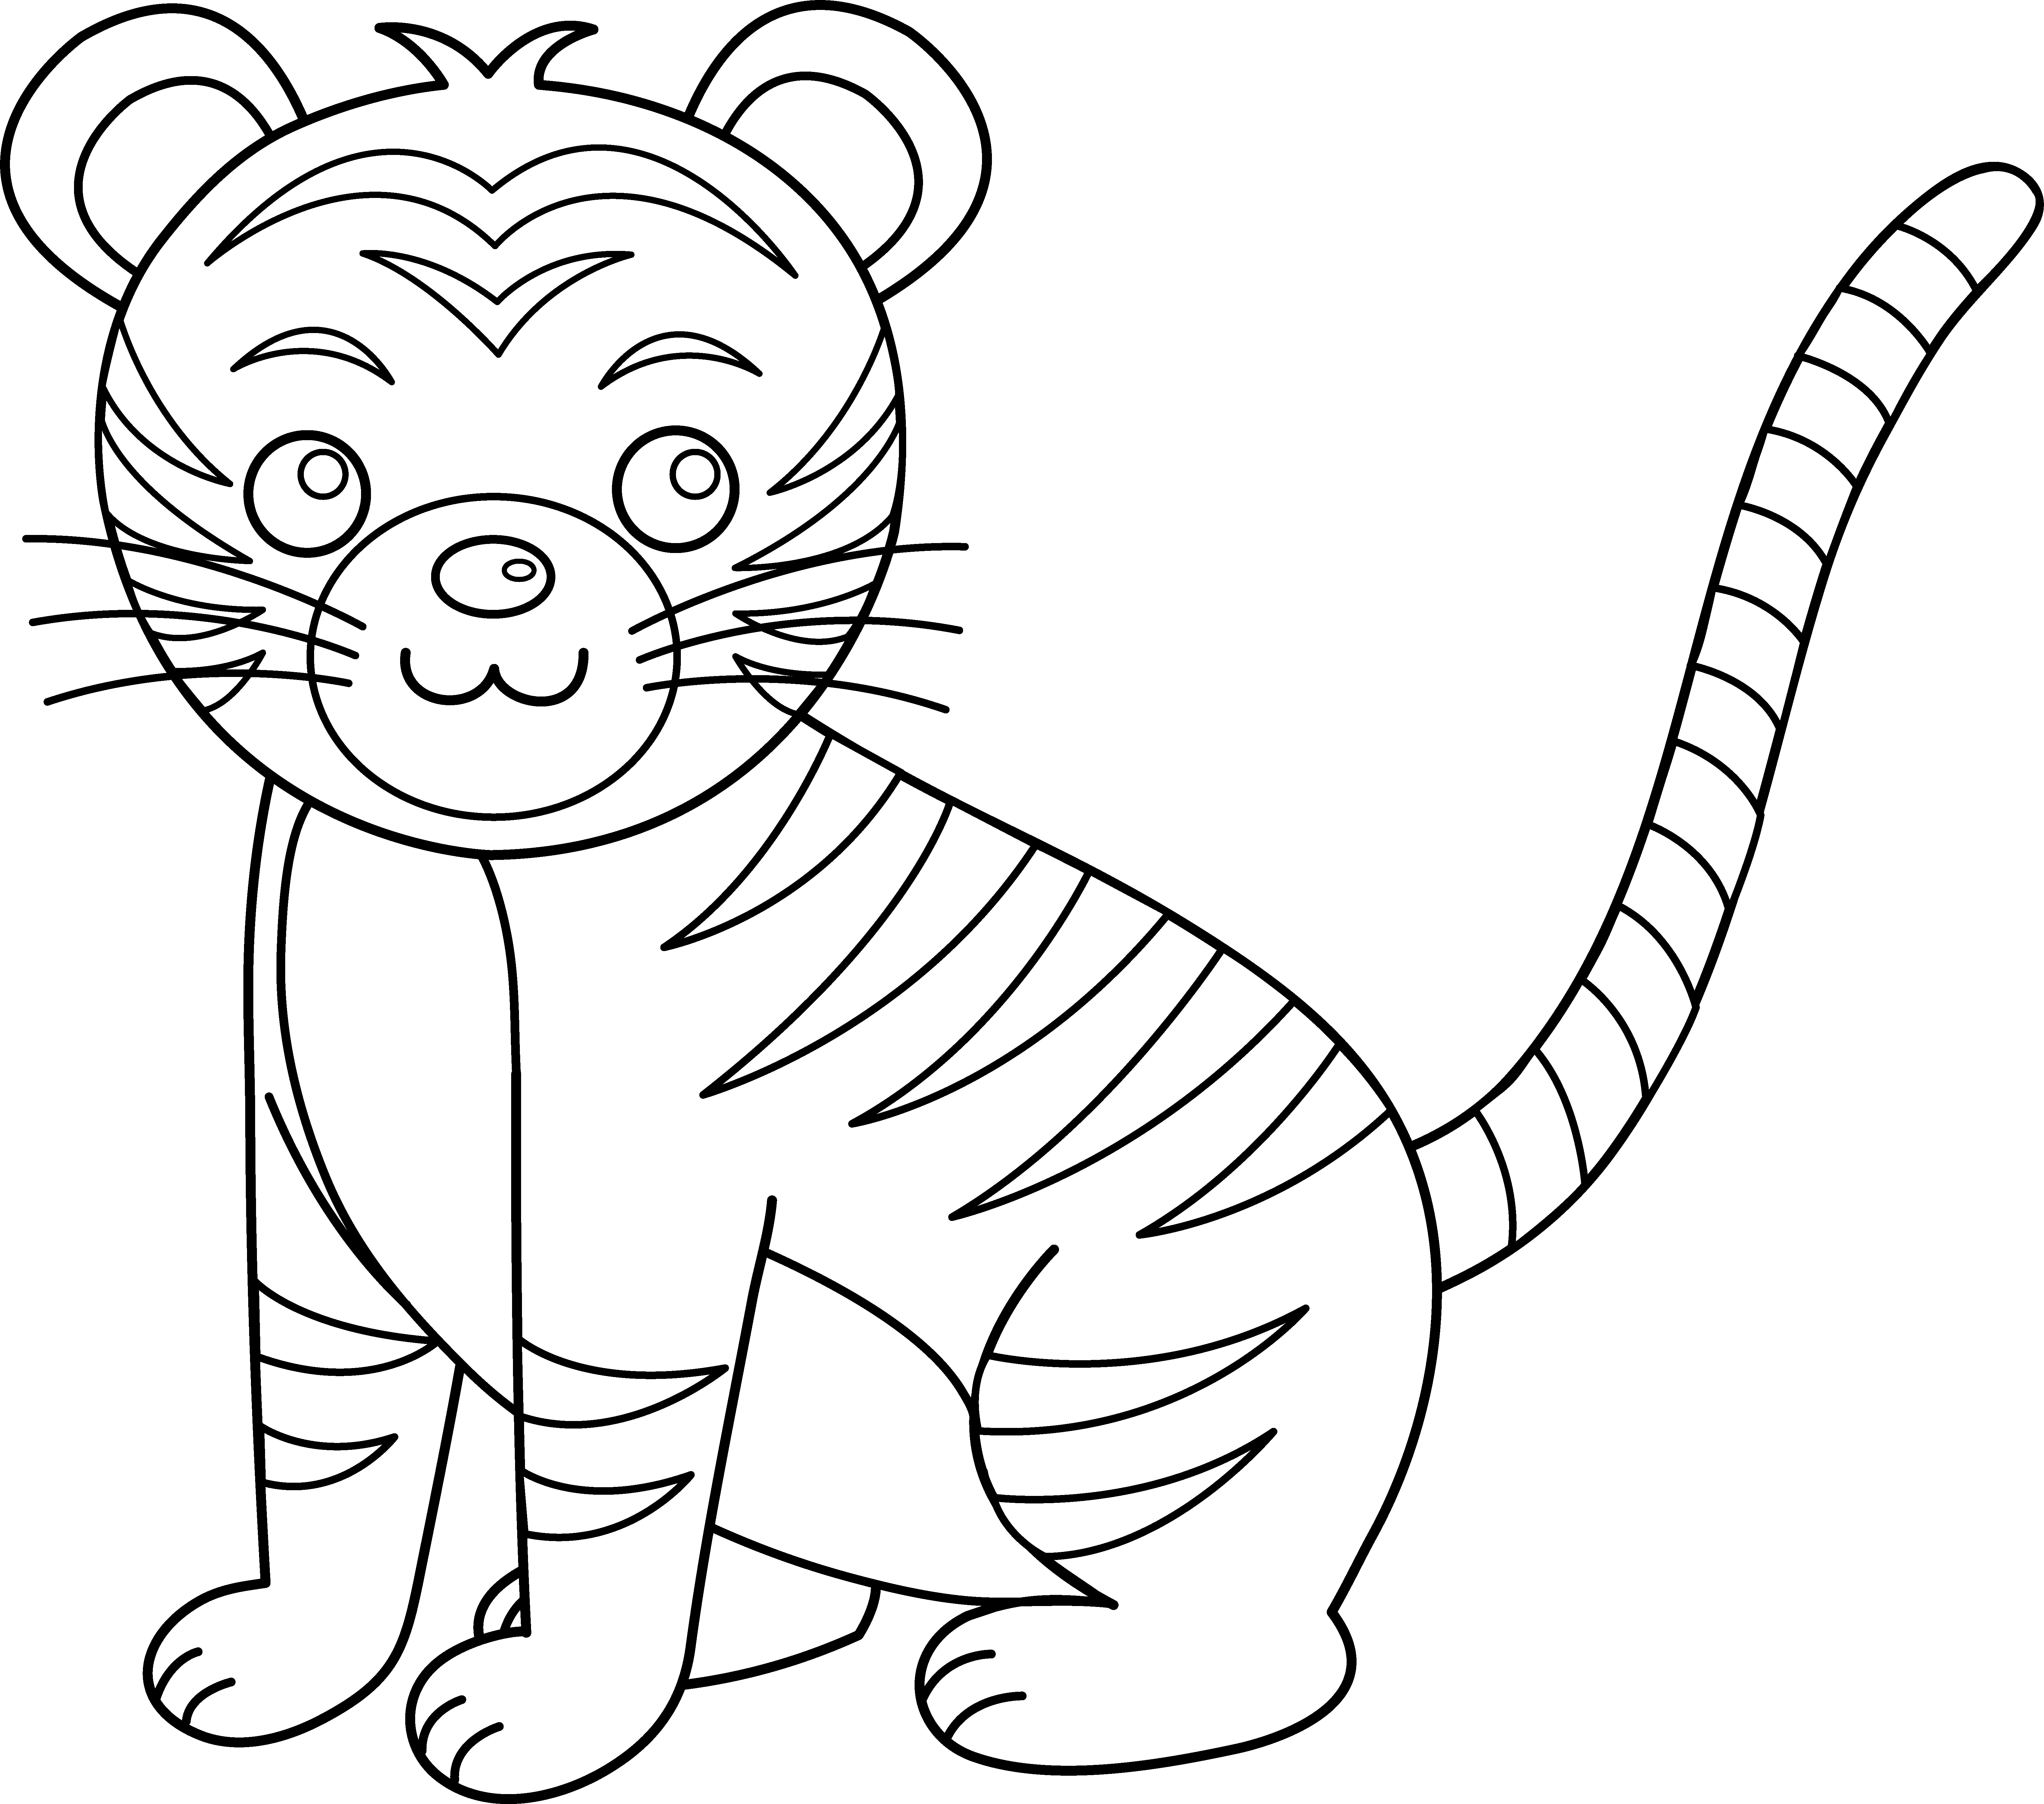 tiger coloring pages cartoon - photo#20